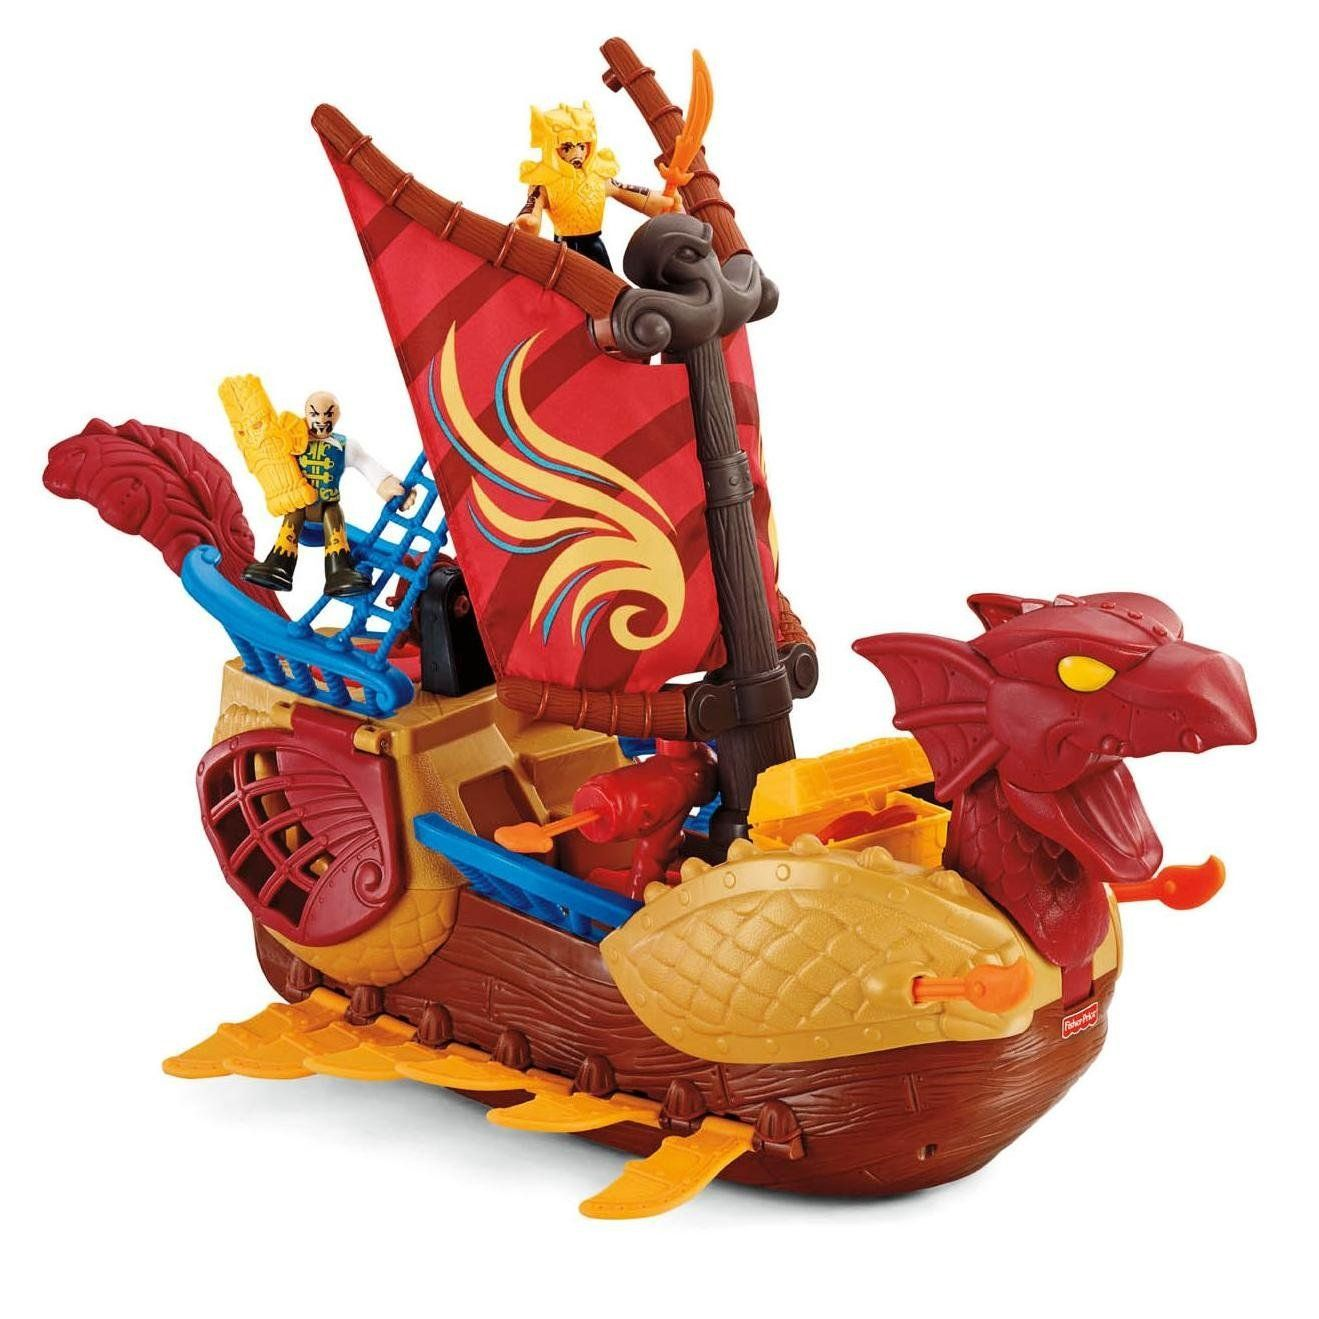 Fisher-Price Imaginext Serpent Pirate Ship ($89.90